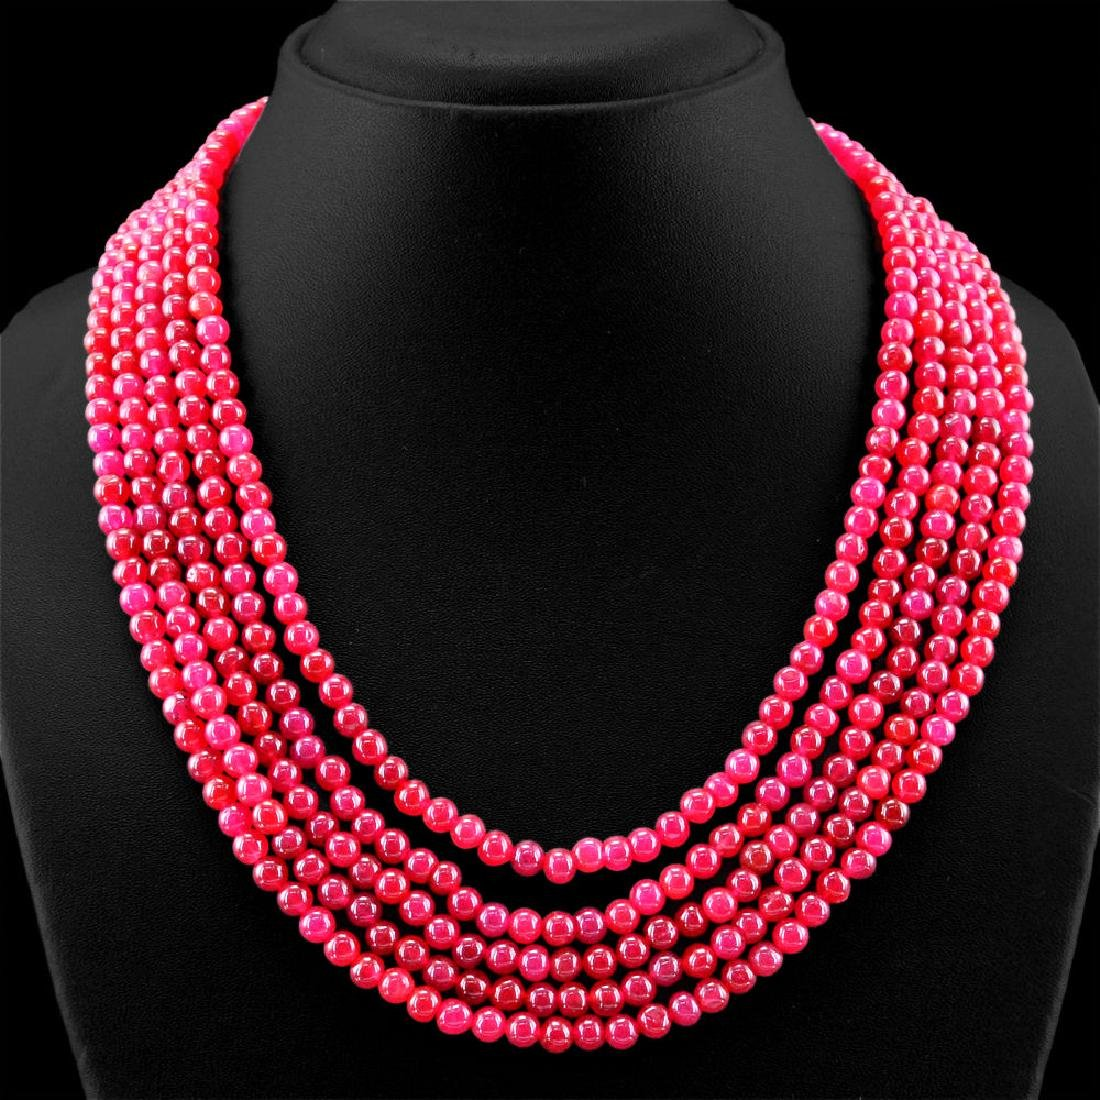 EARTH MINED 5 STRAND RICH RED RUBY ROUND BEADS HAND MAD - 2